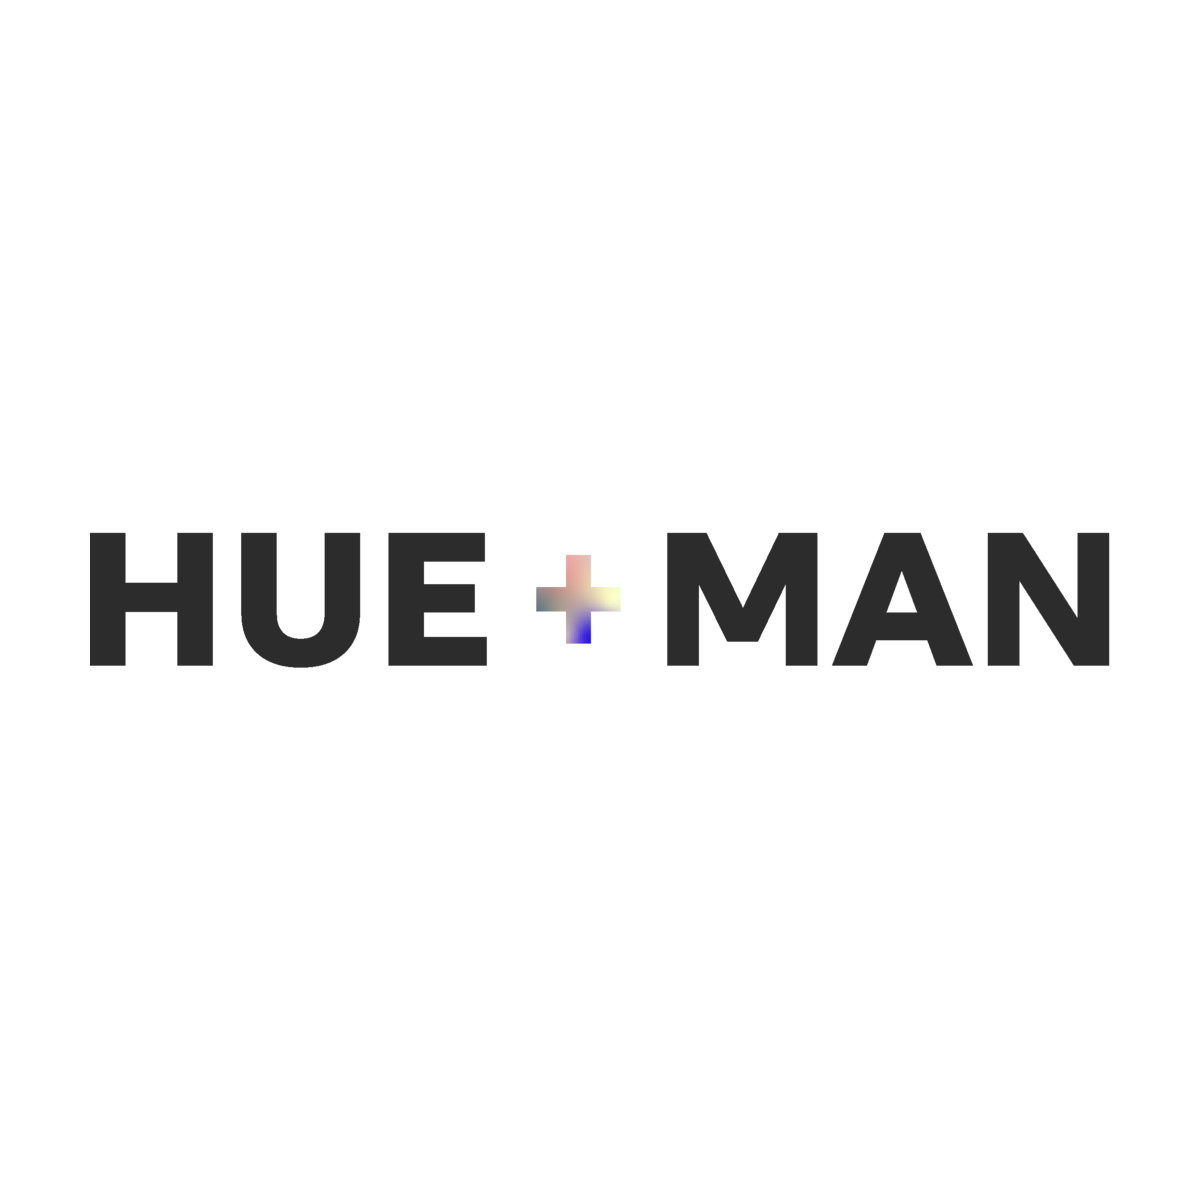 HUE+MAN Design Competition